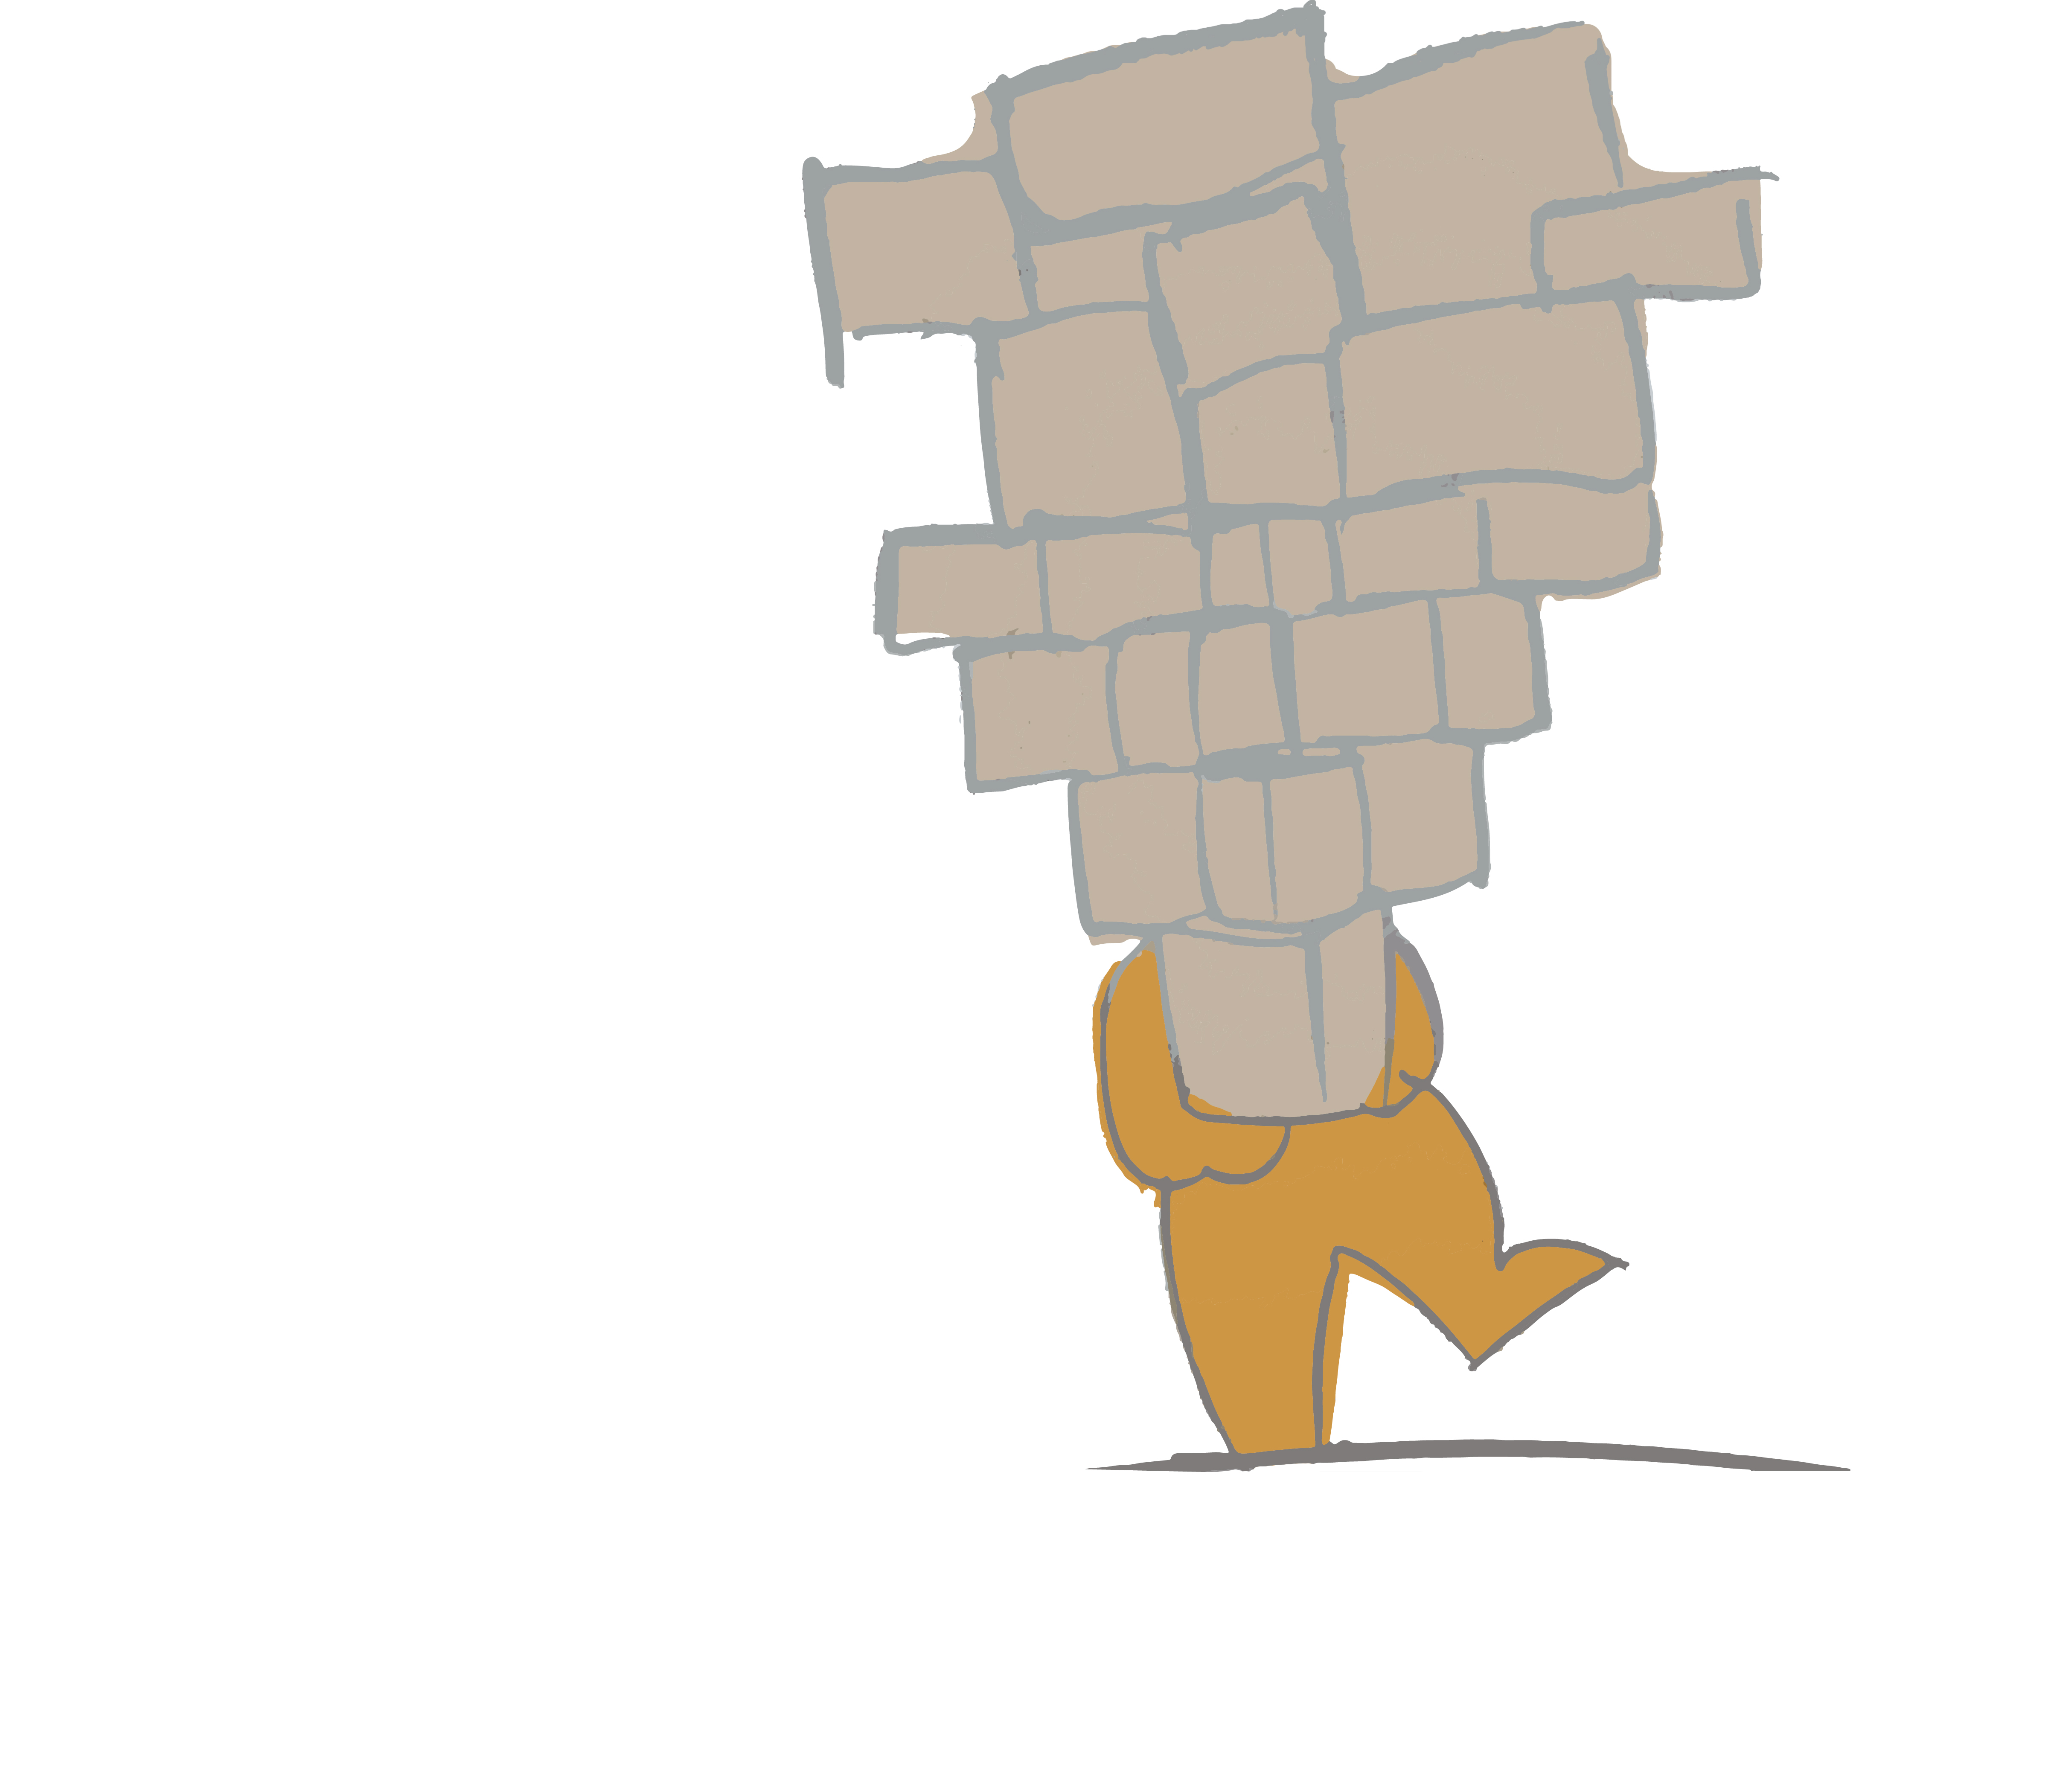 Digital illustration of a person struggling to hold an unequal pile of blocks.